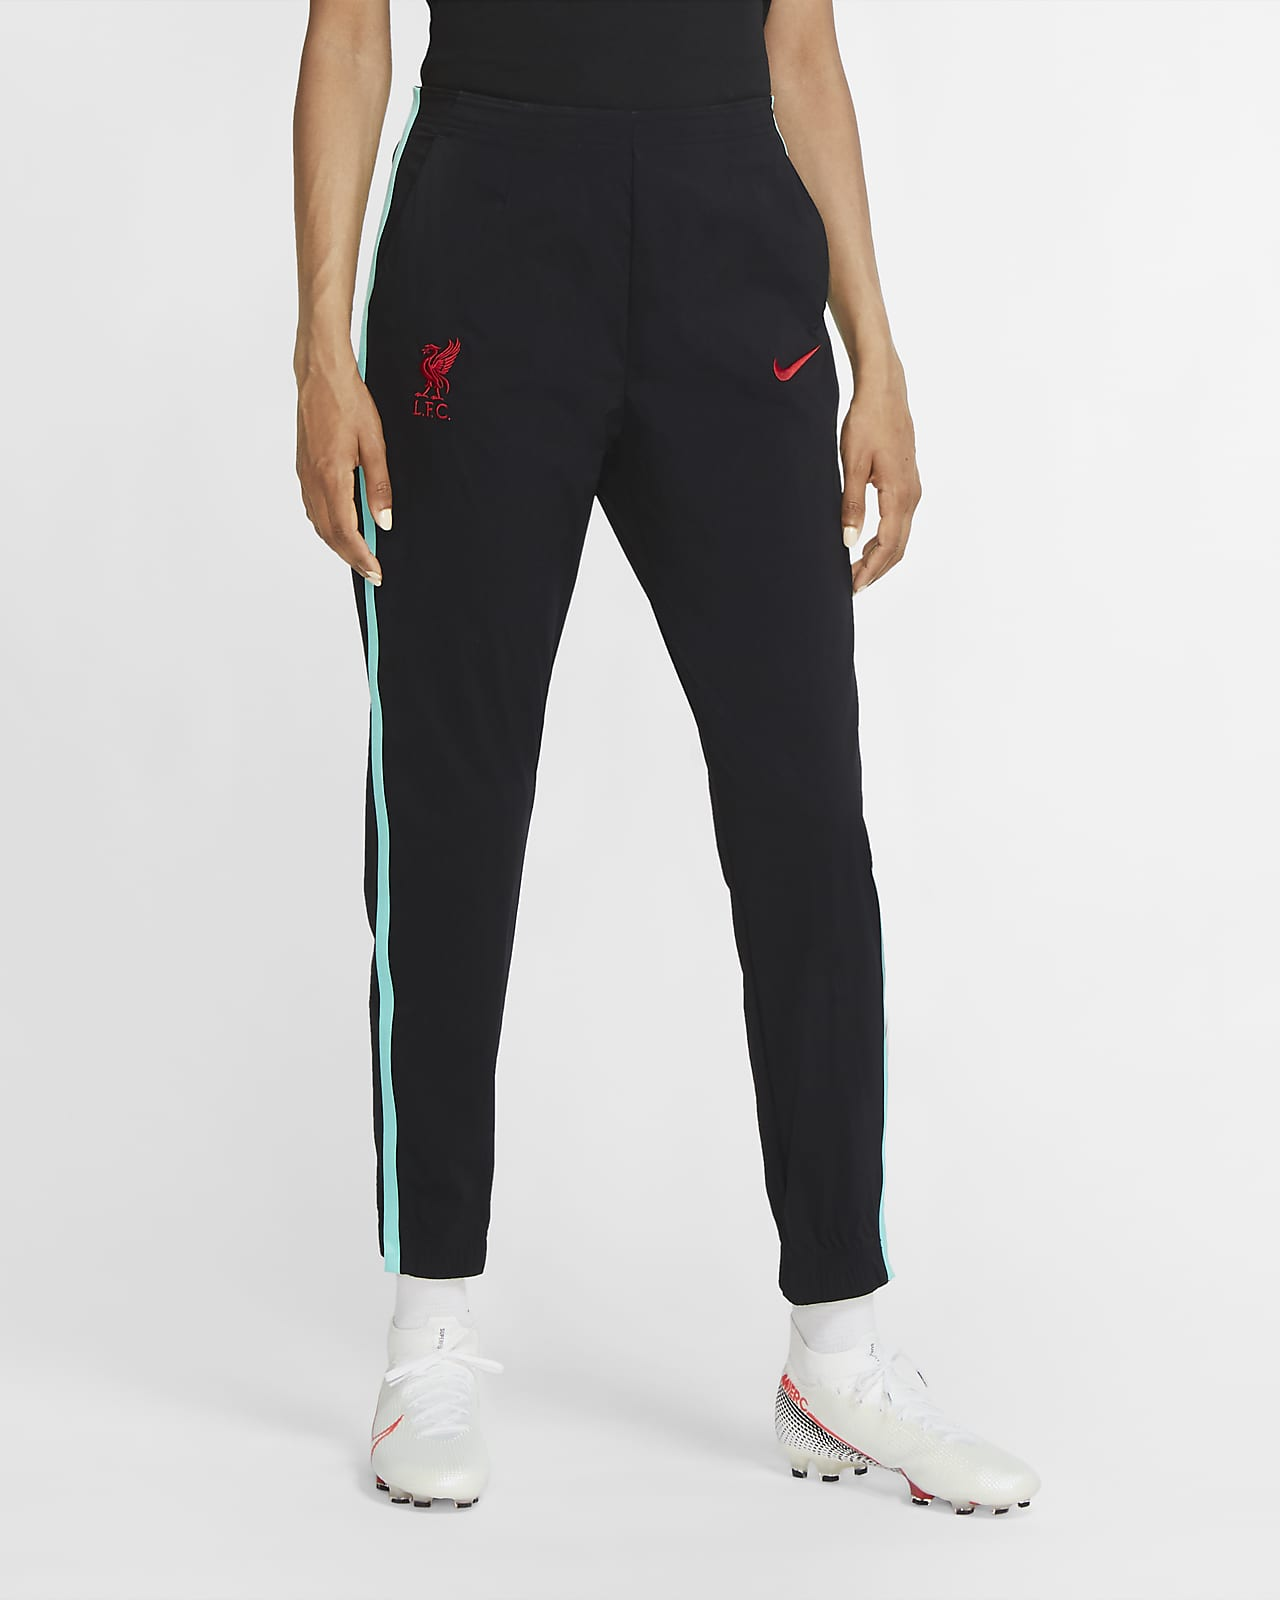 Liverpool F.C. Women's Woven Football Pants